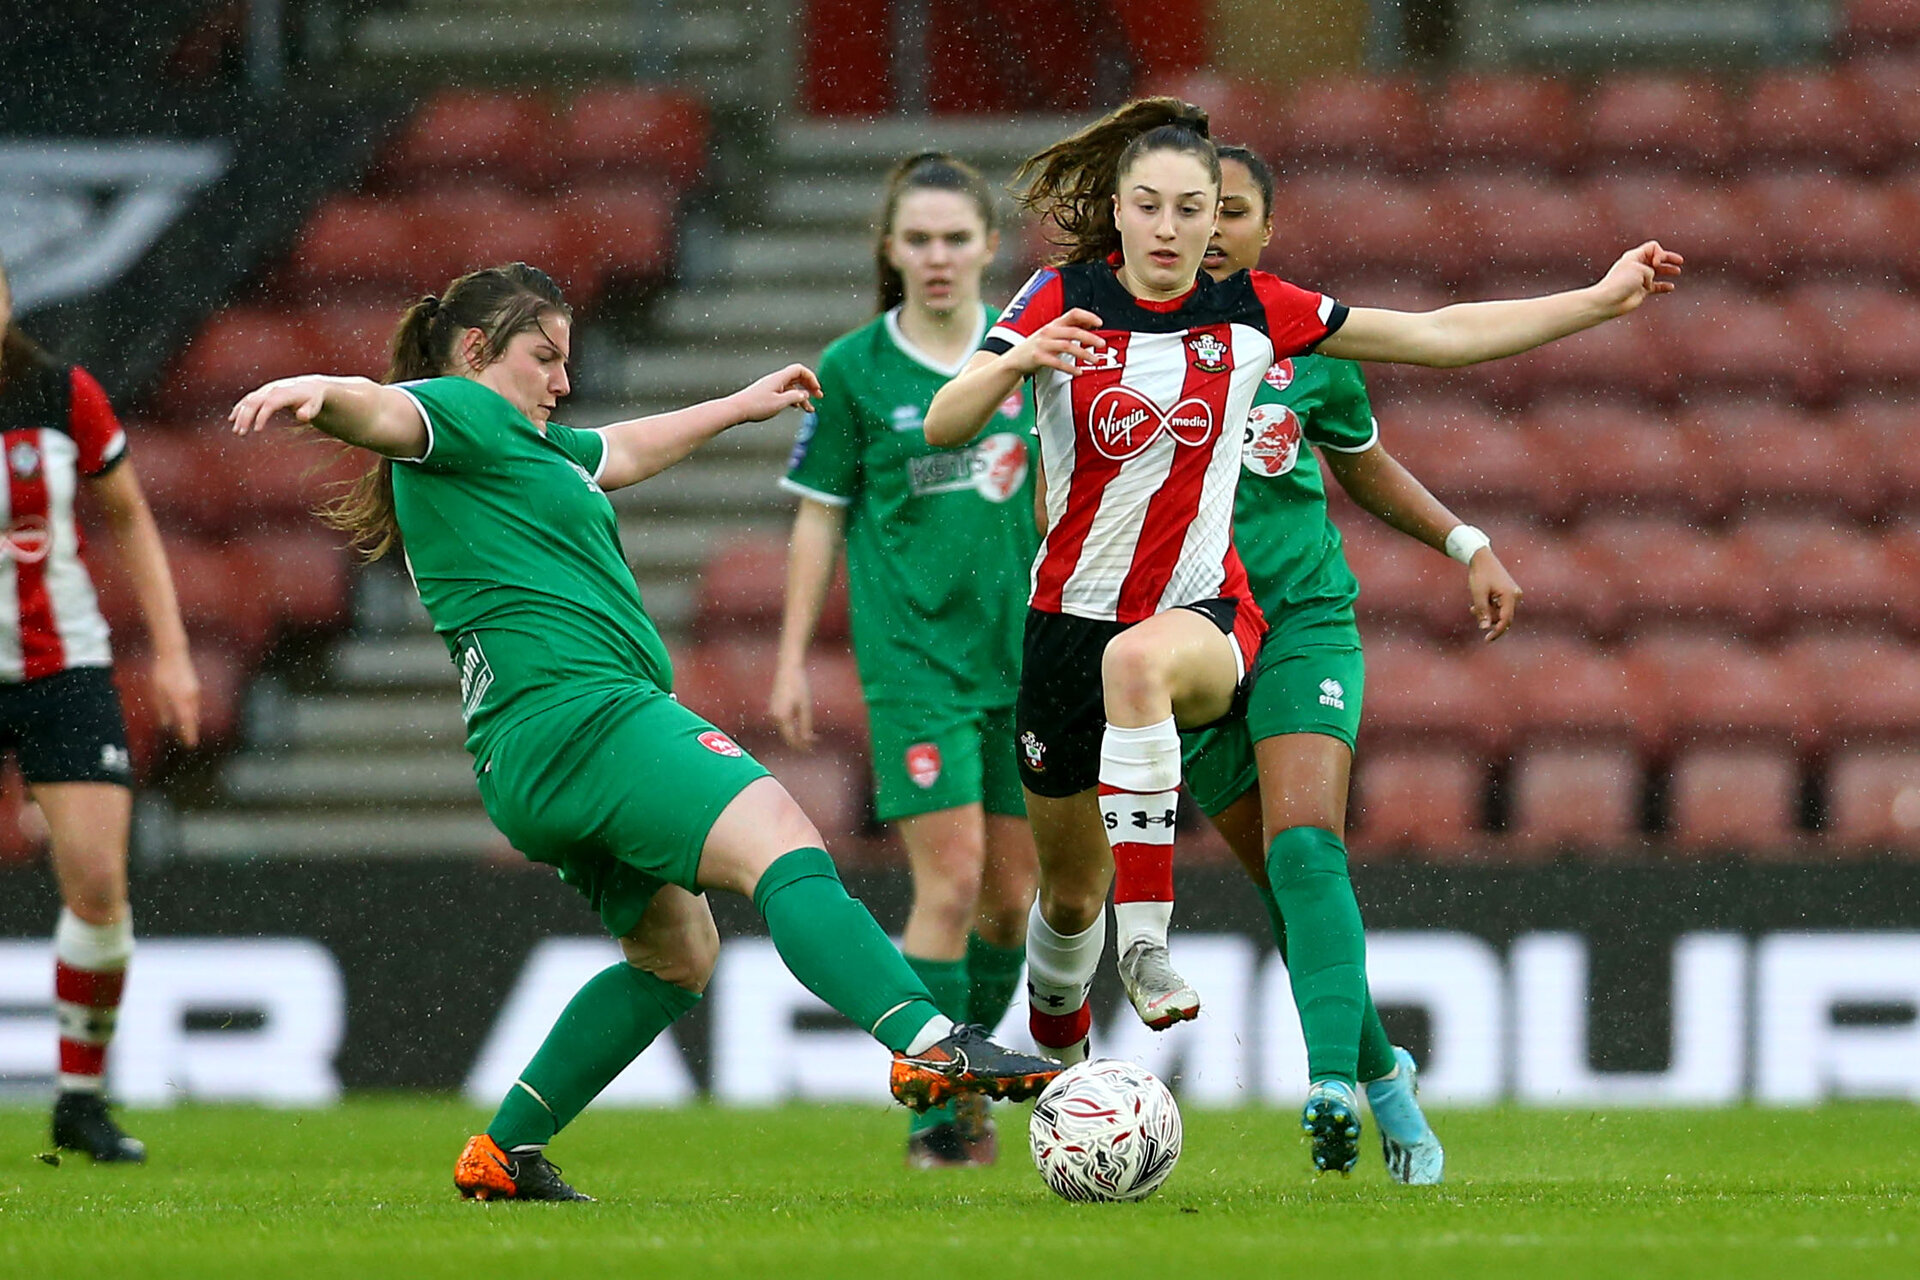 SOUTHAMPTON, ENGLAND - JANUARY 26: Ella Morris during the Women's FA Cup Fourth Round match between Southampton FC and Coventry United Ladies at St. Mary's Stadium on January 26, 2020 in Southampton, England. (Photo by Isabelle Field/Southampton FC via Getty Images)